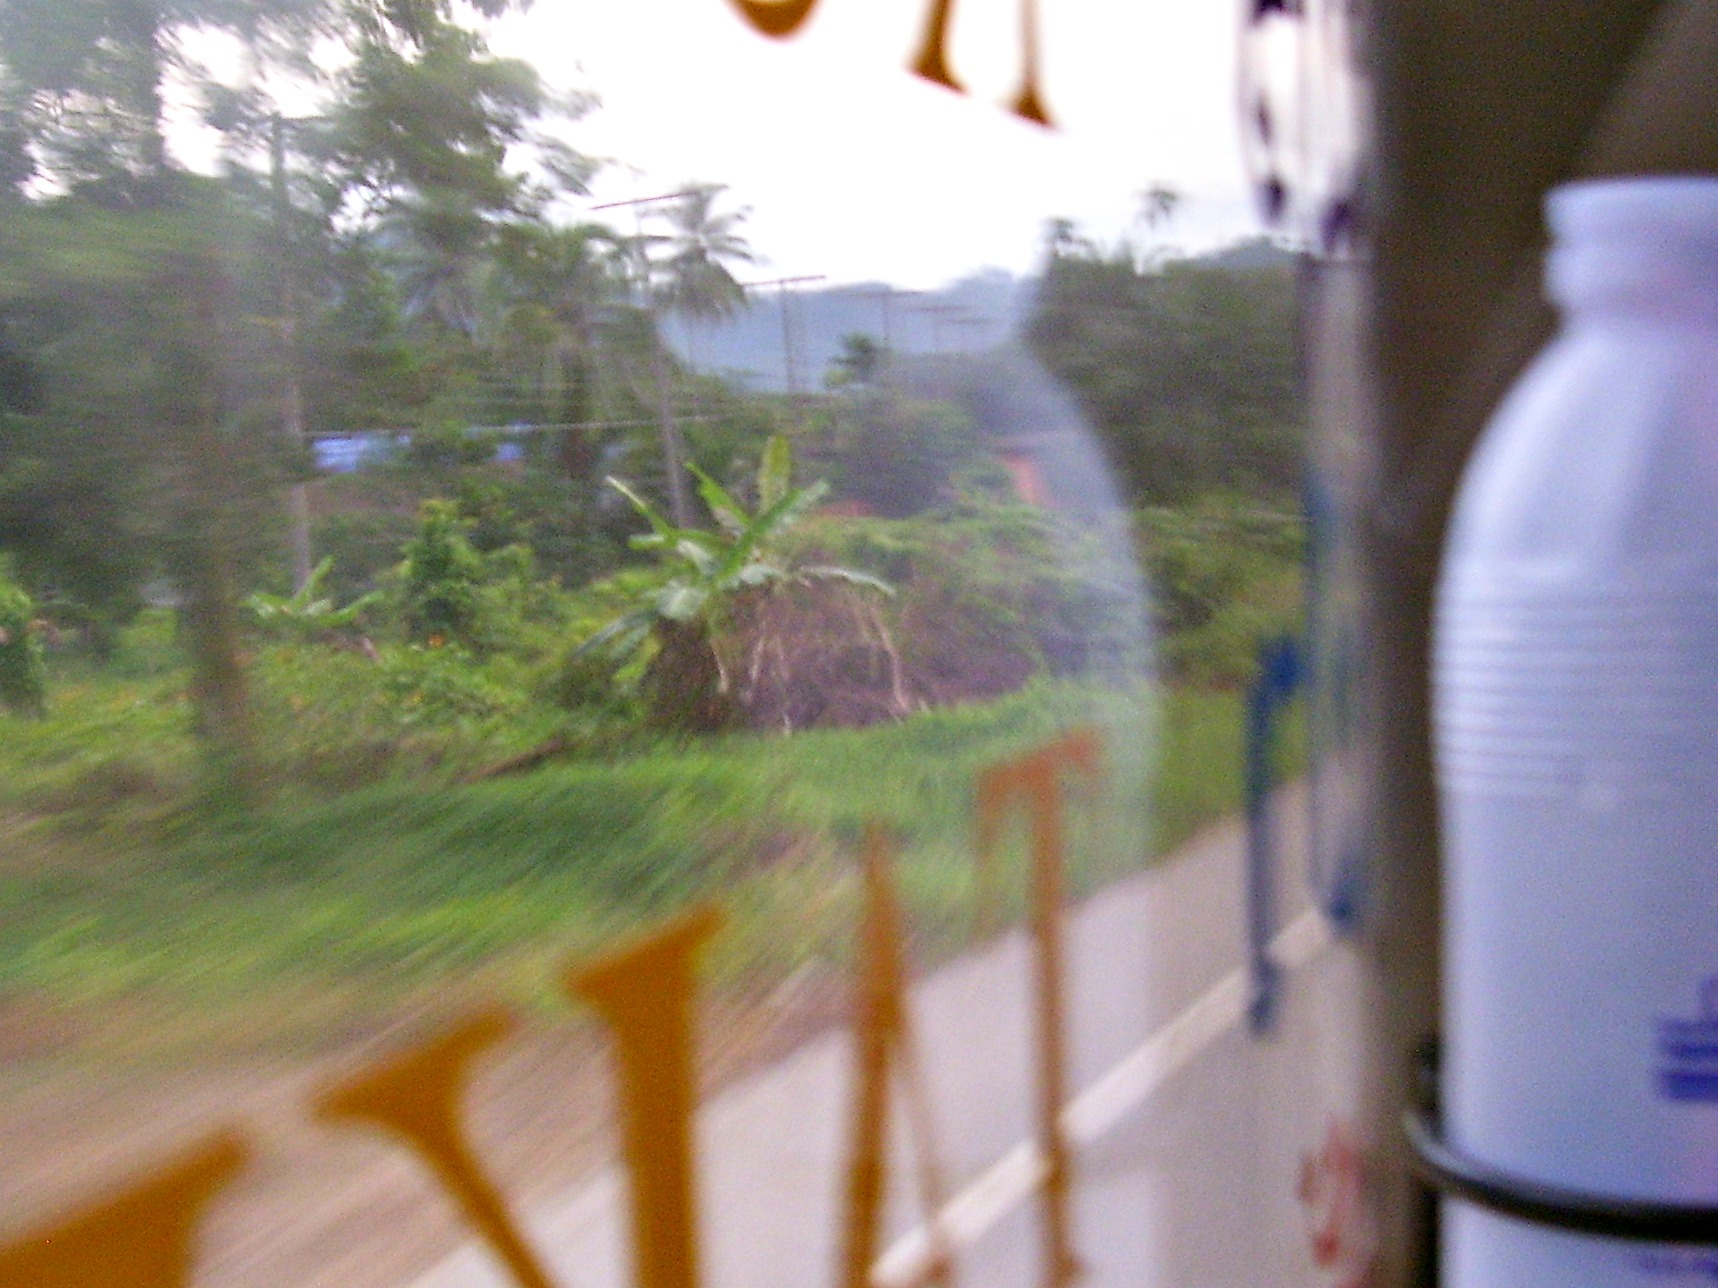 Travel to Myanmar: Southern Thailand zooming past my window